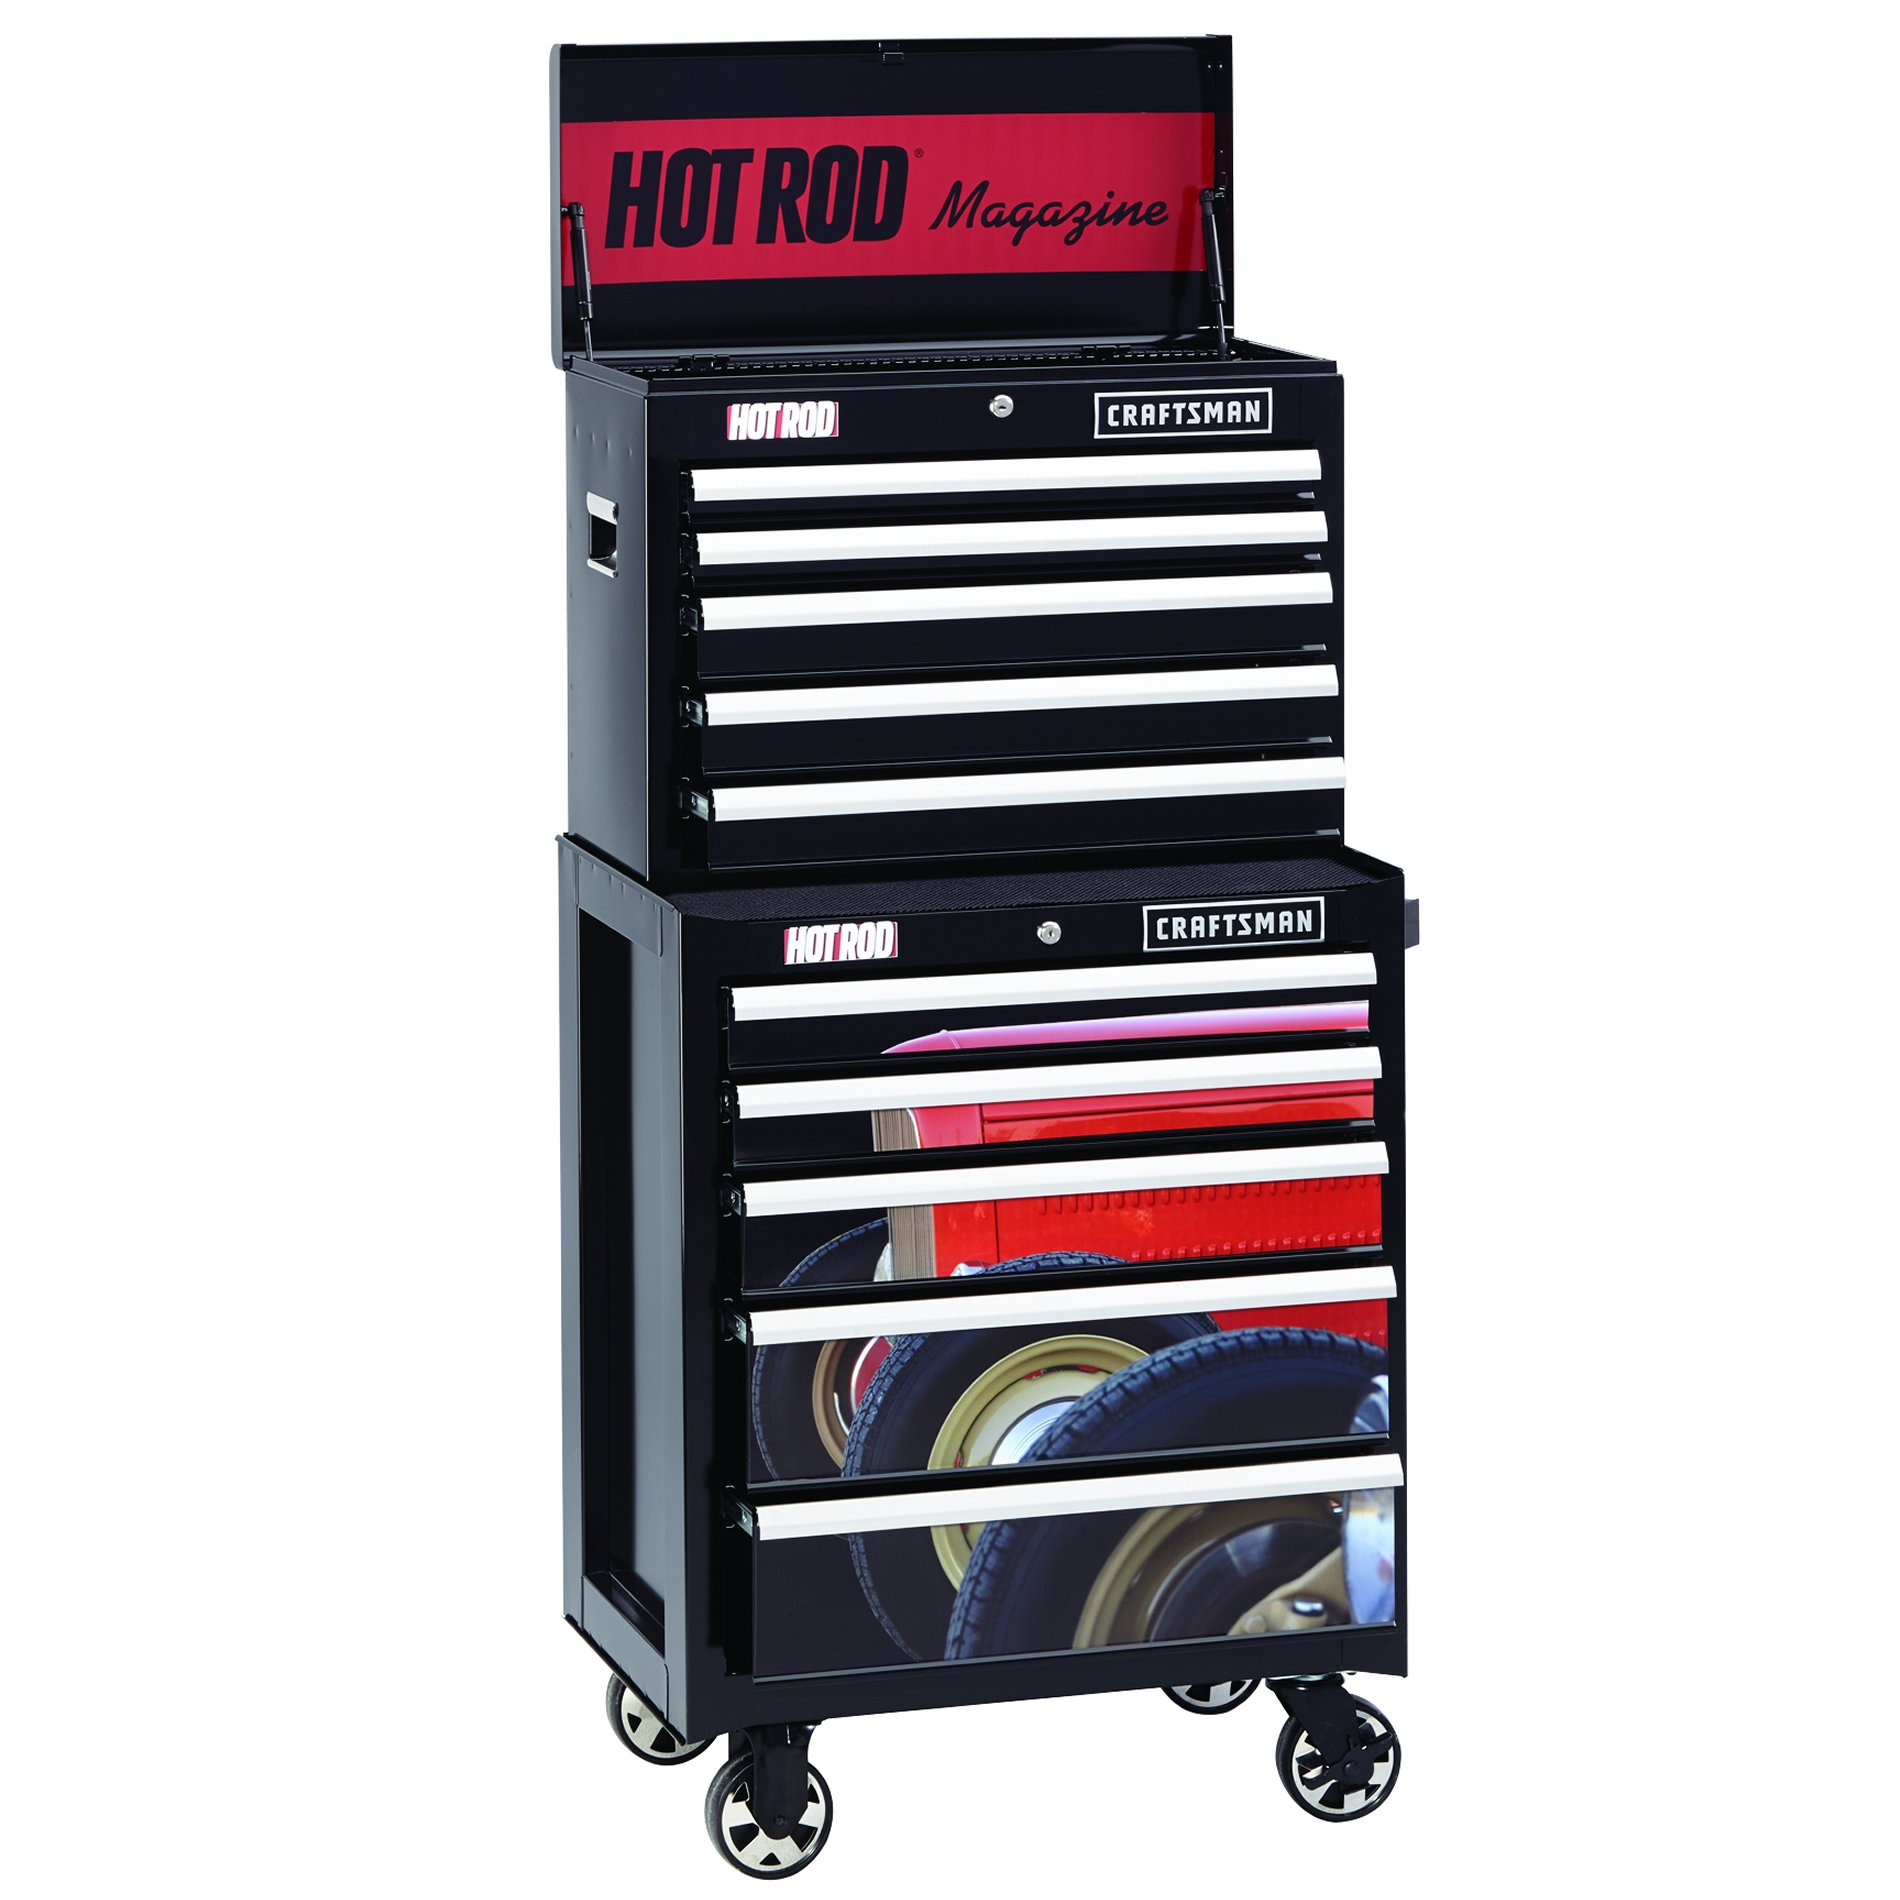 Craftsman 26 in. 5-Drawer Heavy-Duty Ball Bearing Rolling Cabinet - Hot Rod®